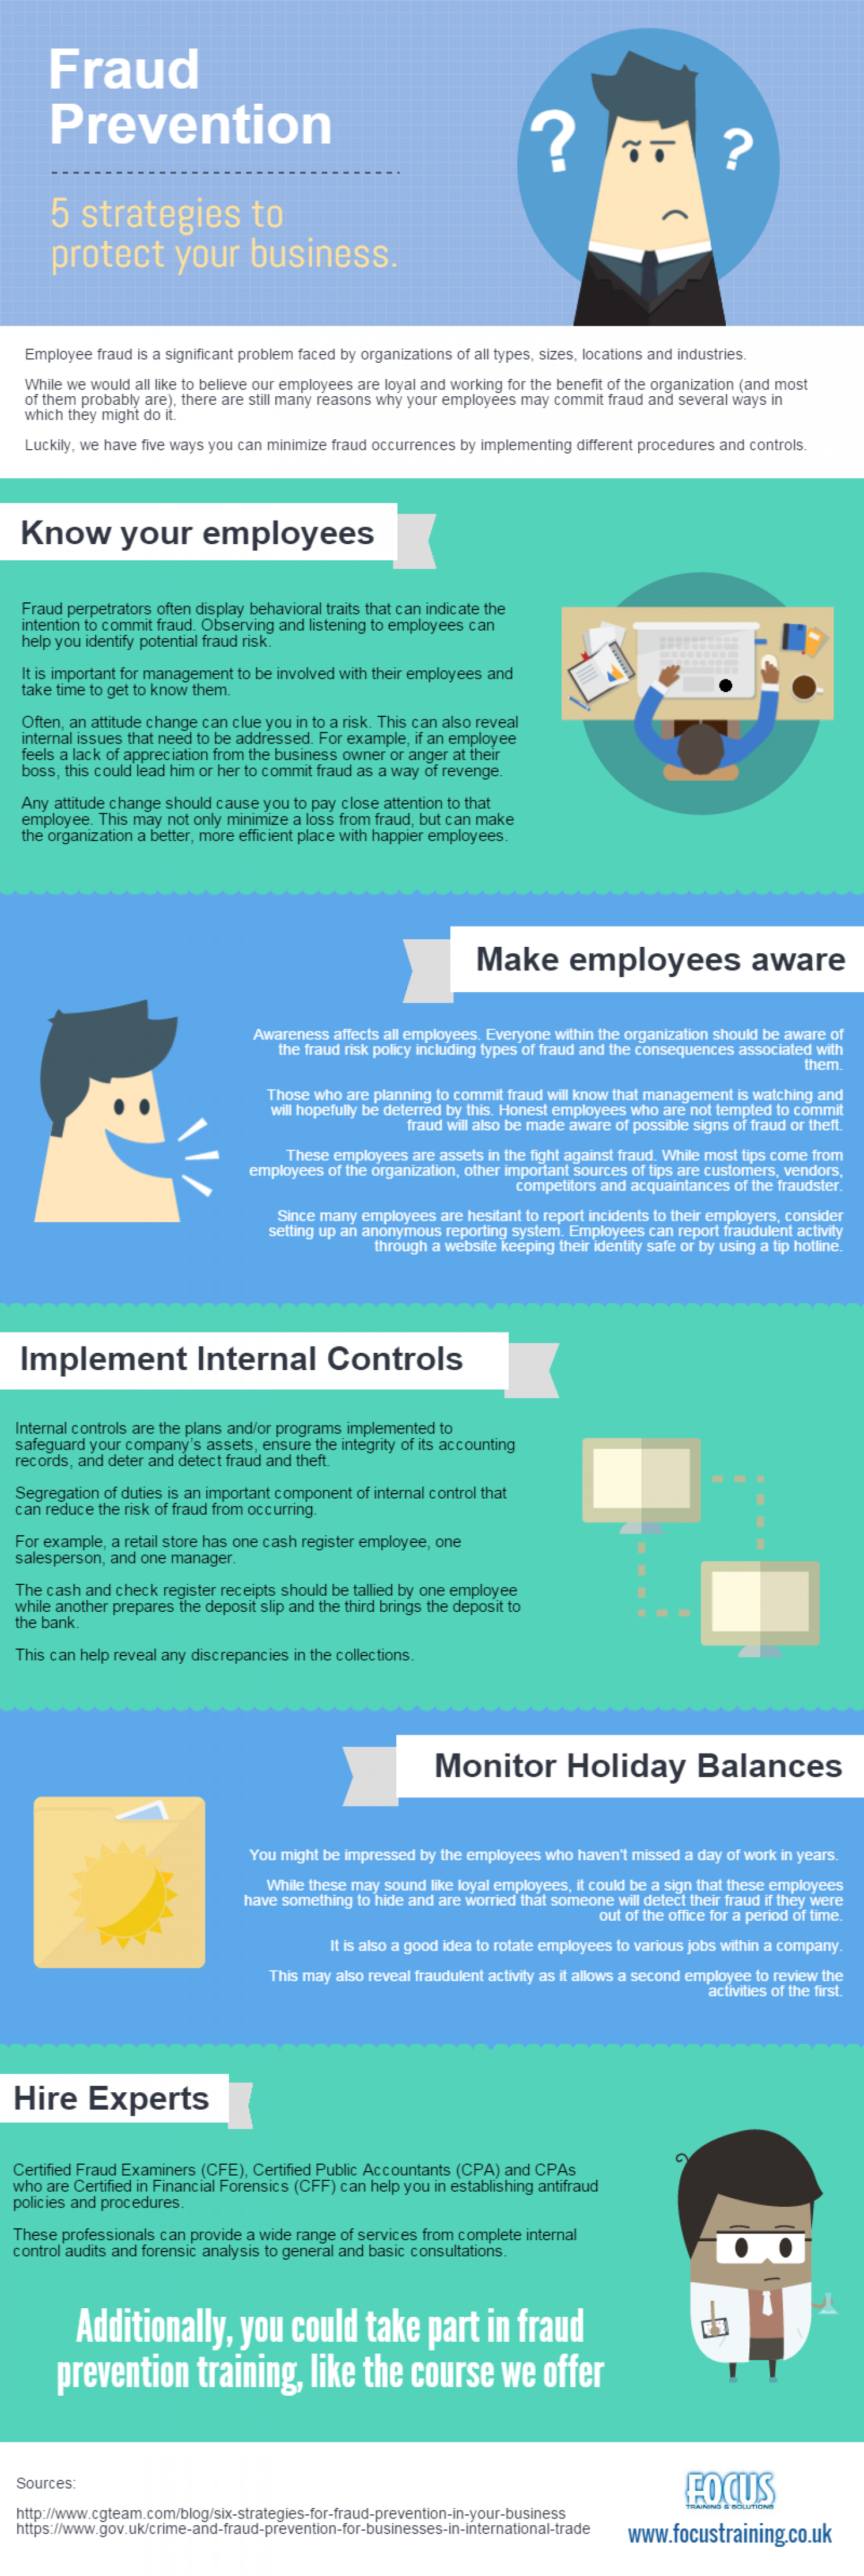 Fraud Prevention: 5 Strategies to Protect your Business Infographic